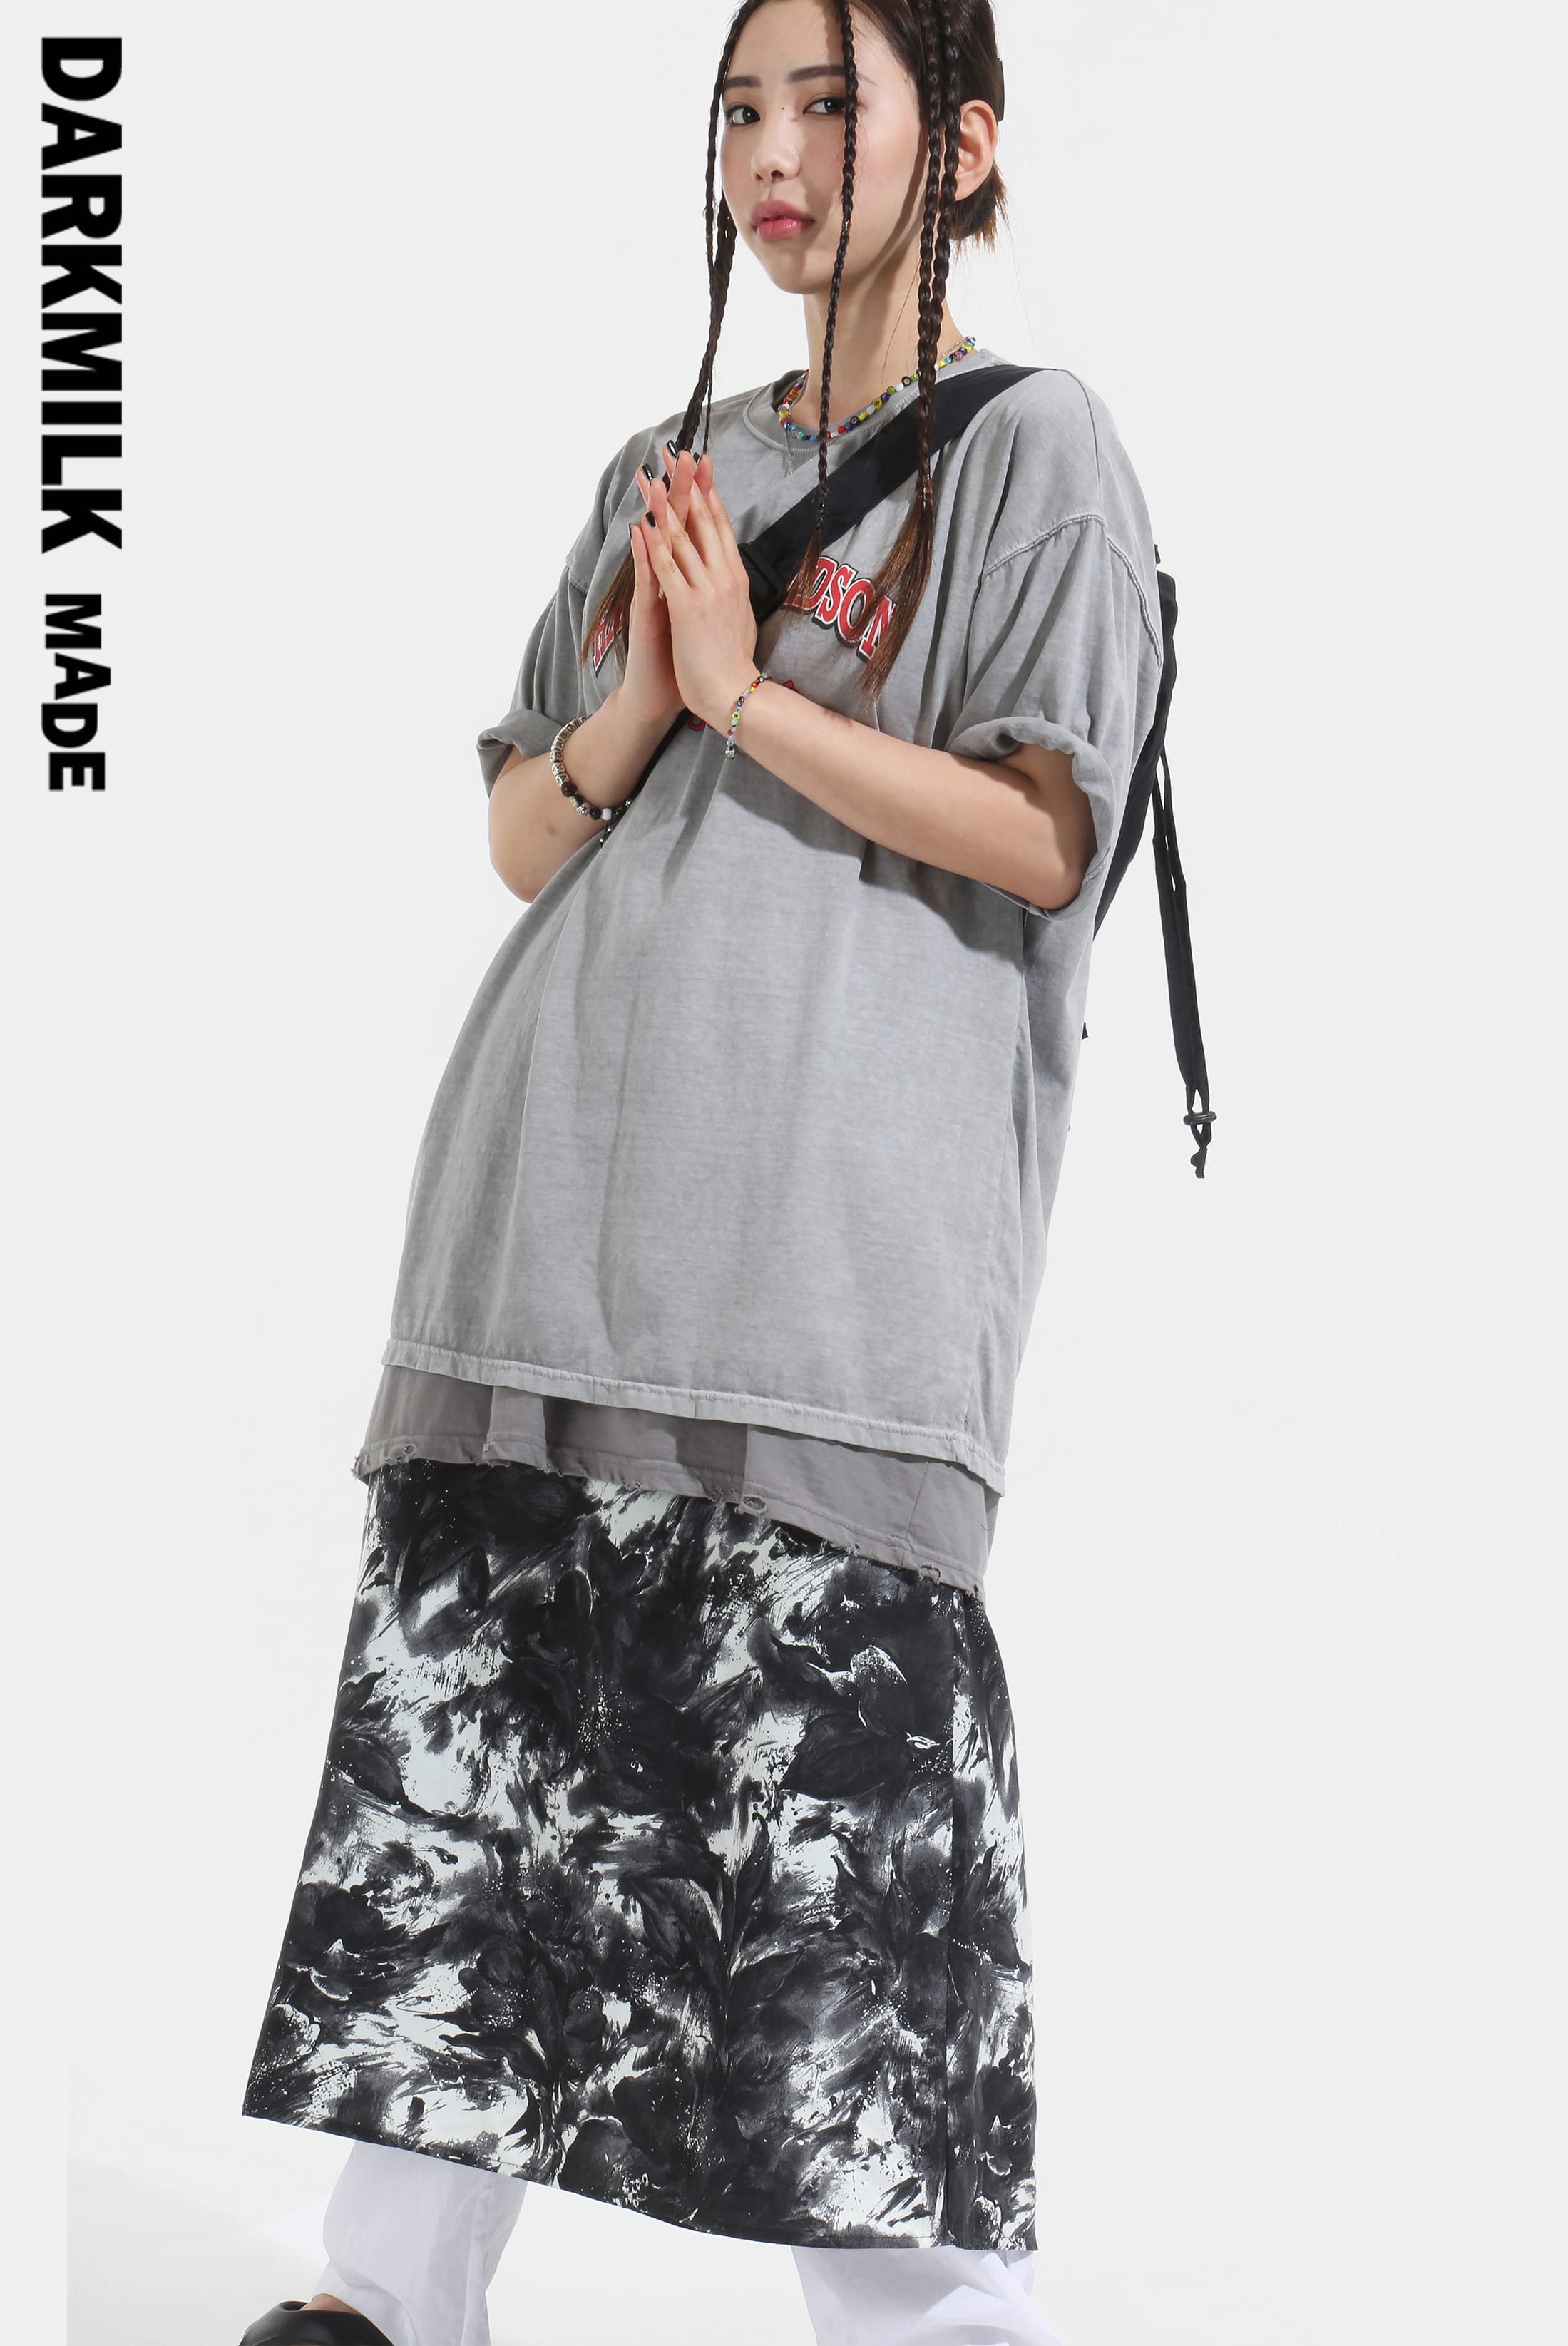 [MADE] Painting_Brush Long Skirt [SALE 20%]